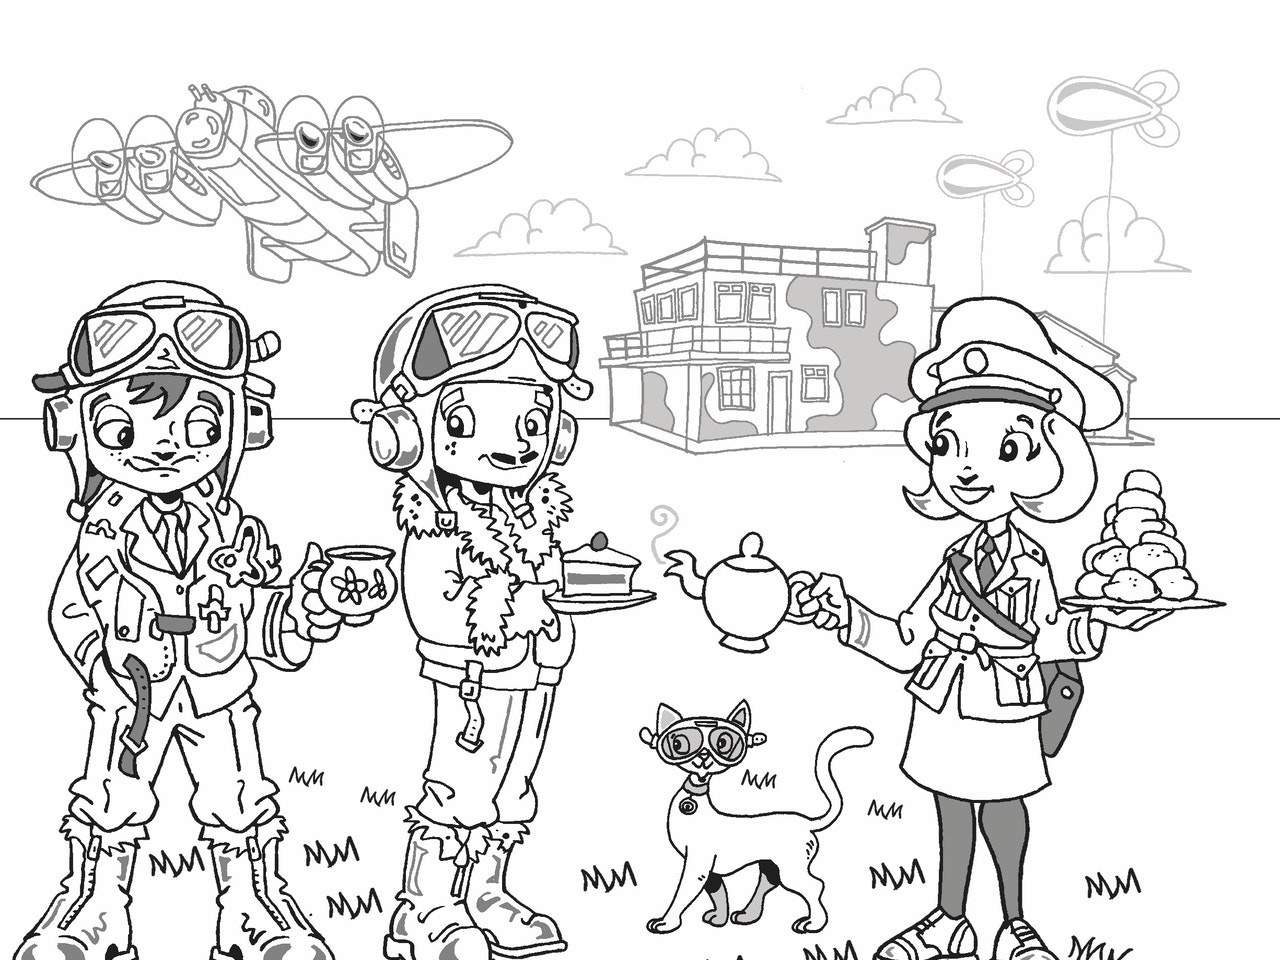 light hearted retro educational historical RAF heroes aviation cartoon illustration child pilots comic strip lancaster bomber plane ww2 airfield